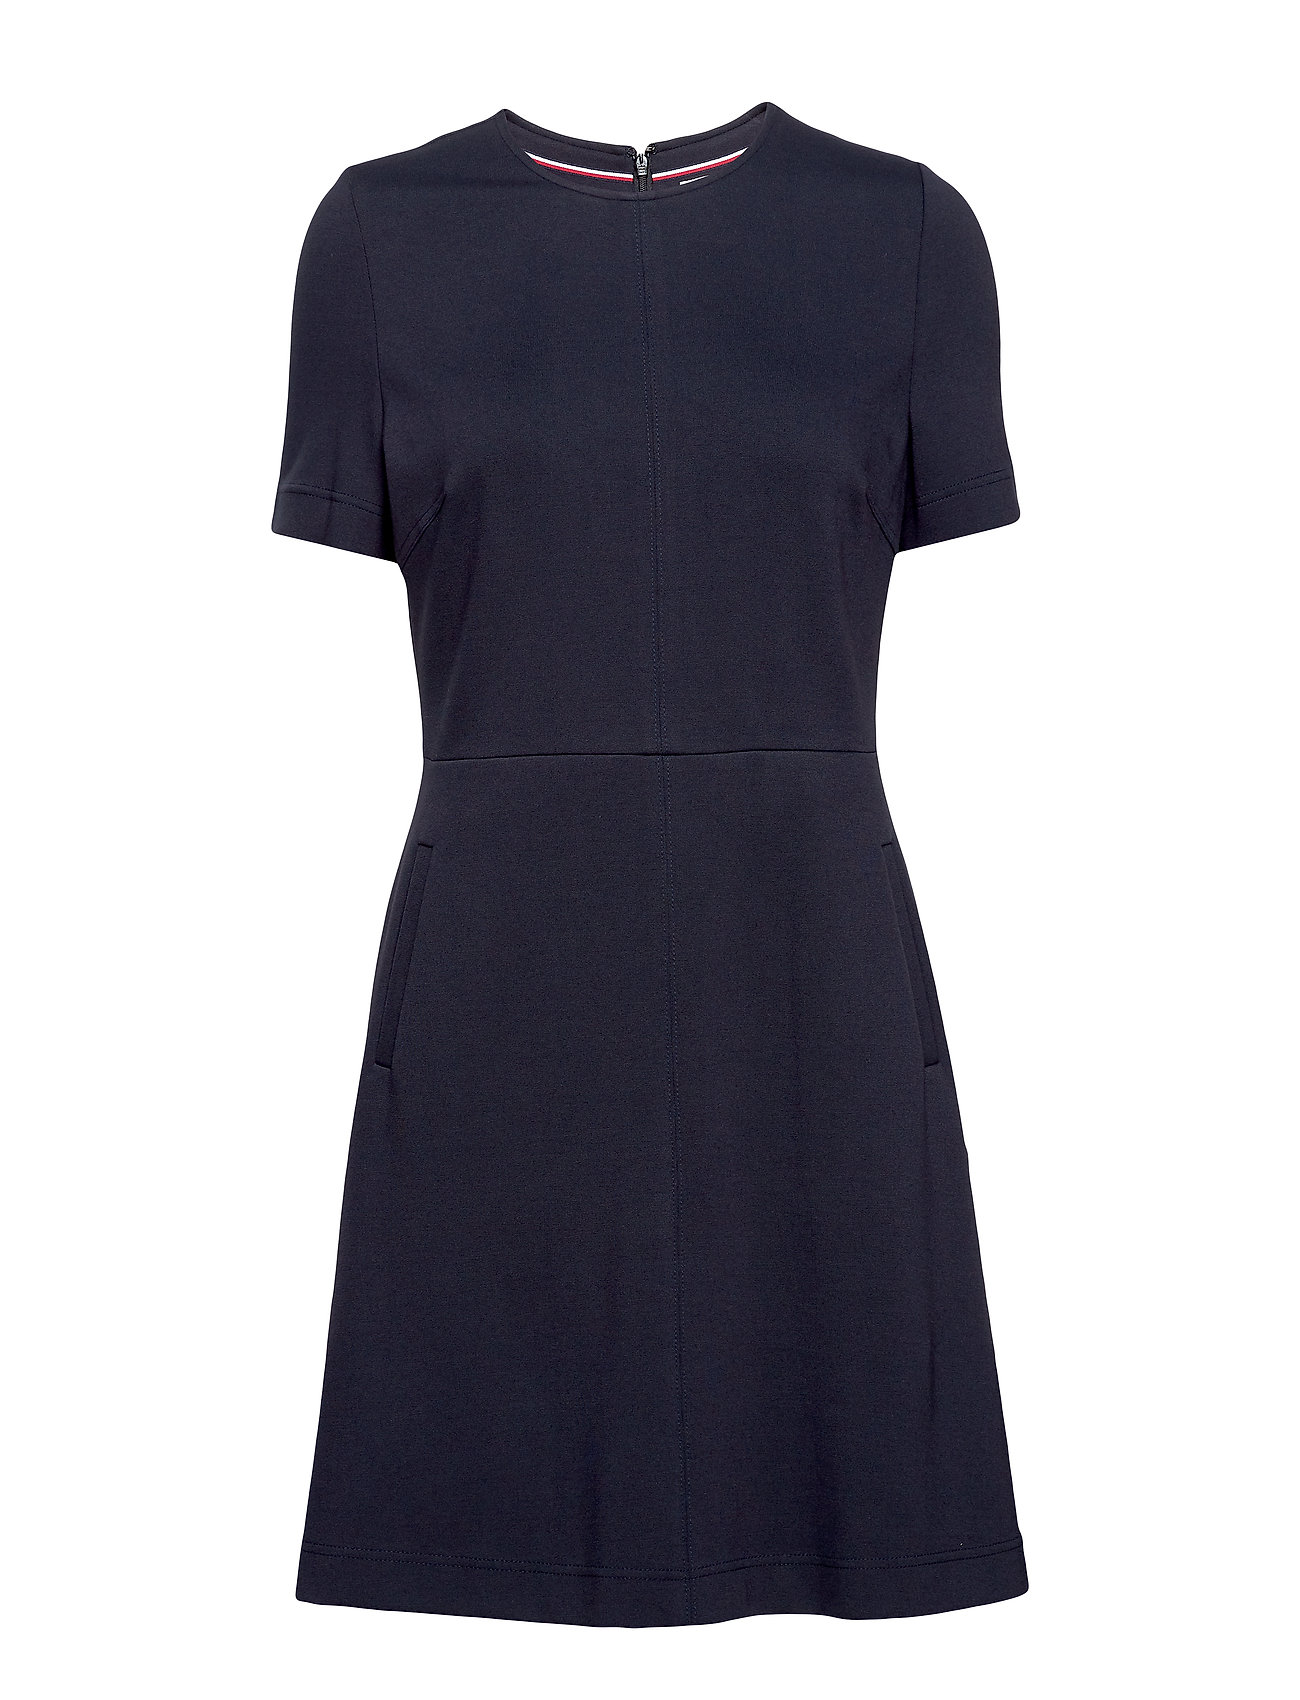 Tommy Hilfiger ARIELLE DRESS - BLACK BEAUTY